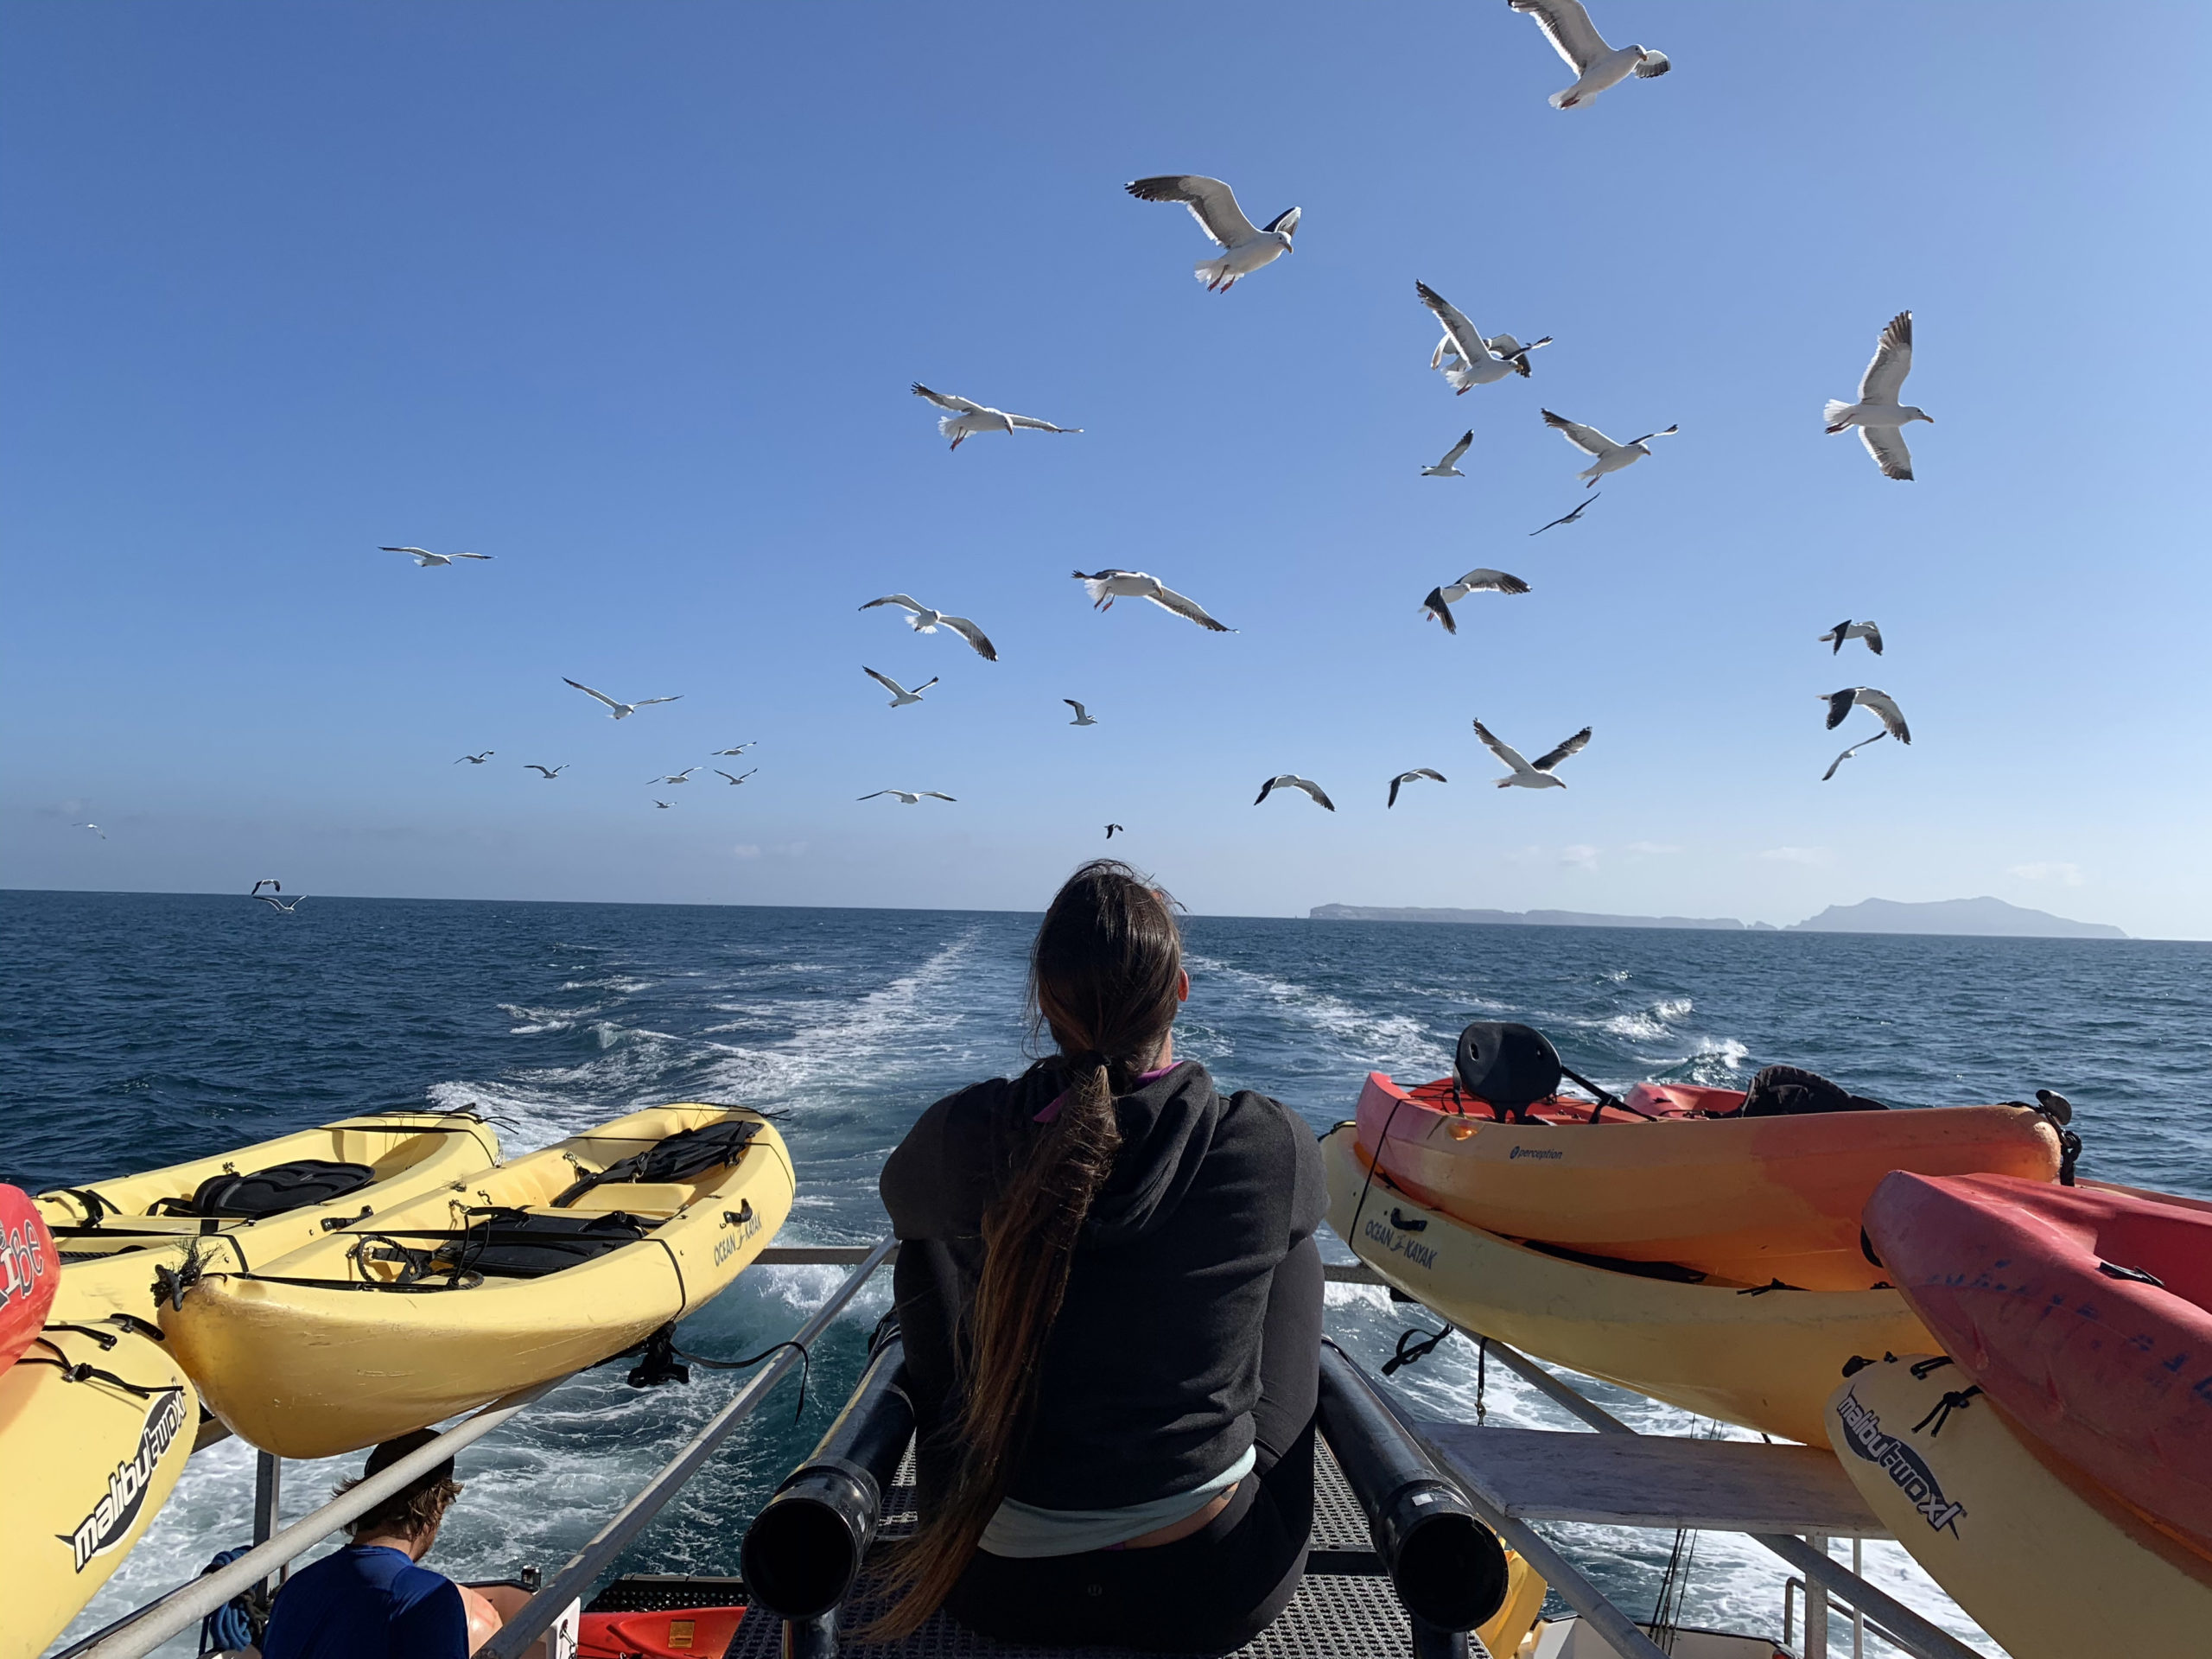 the boat ride to the channel islands is an experience in itself